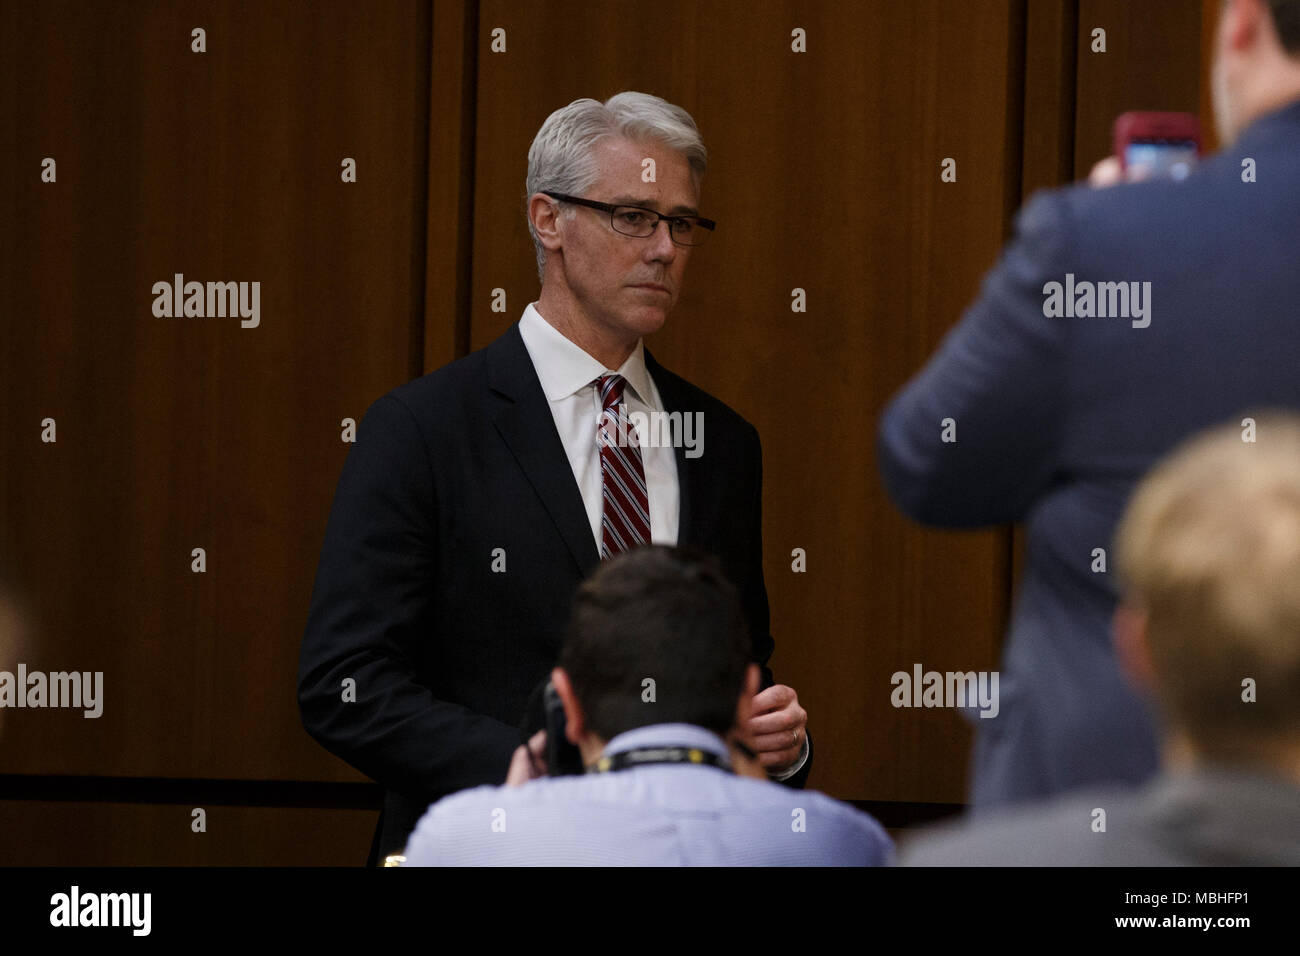 General Counsel Stock Photos & General Counsel Stock Images - Alamy